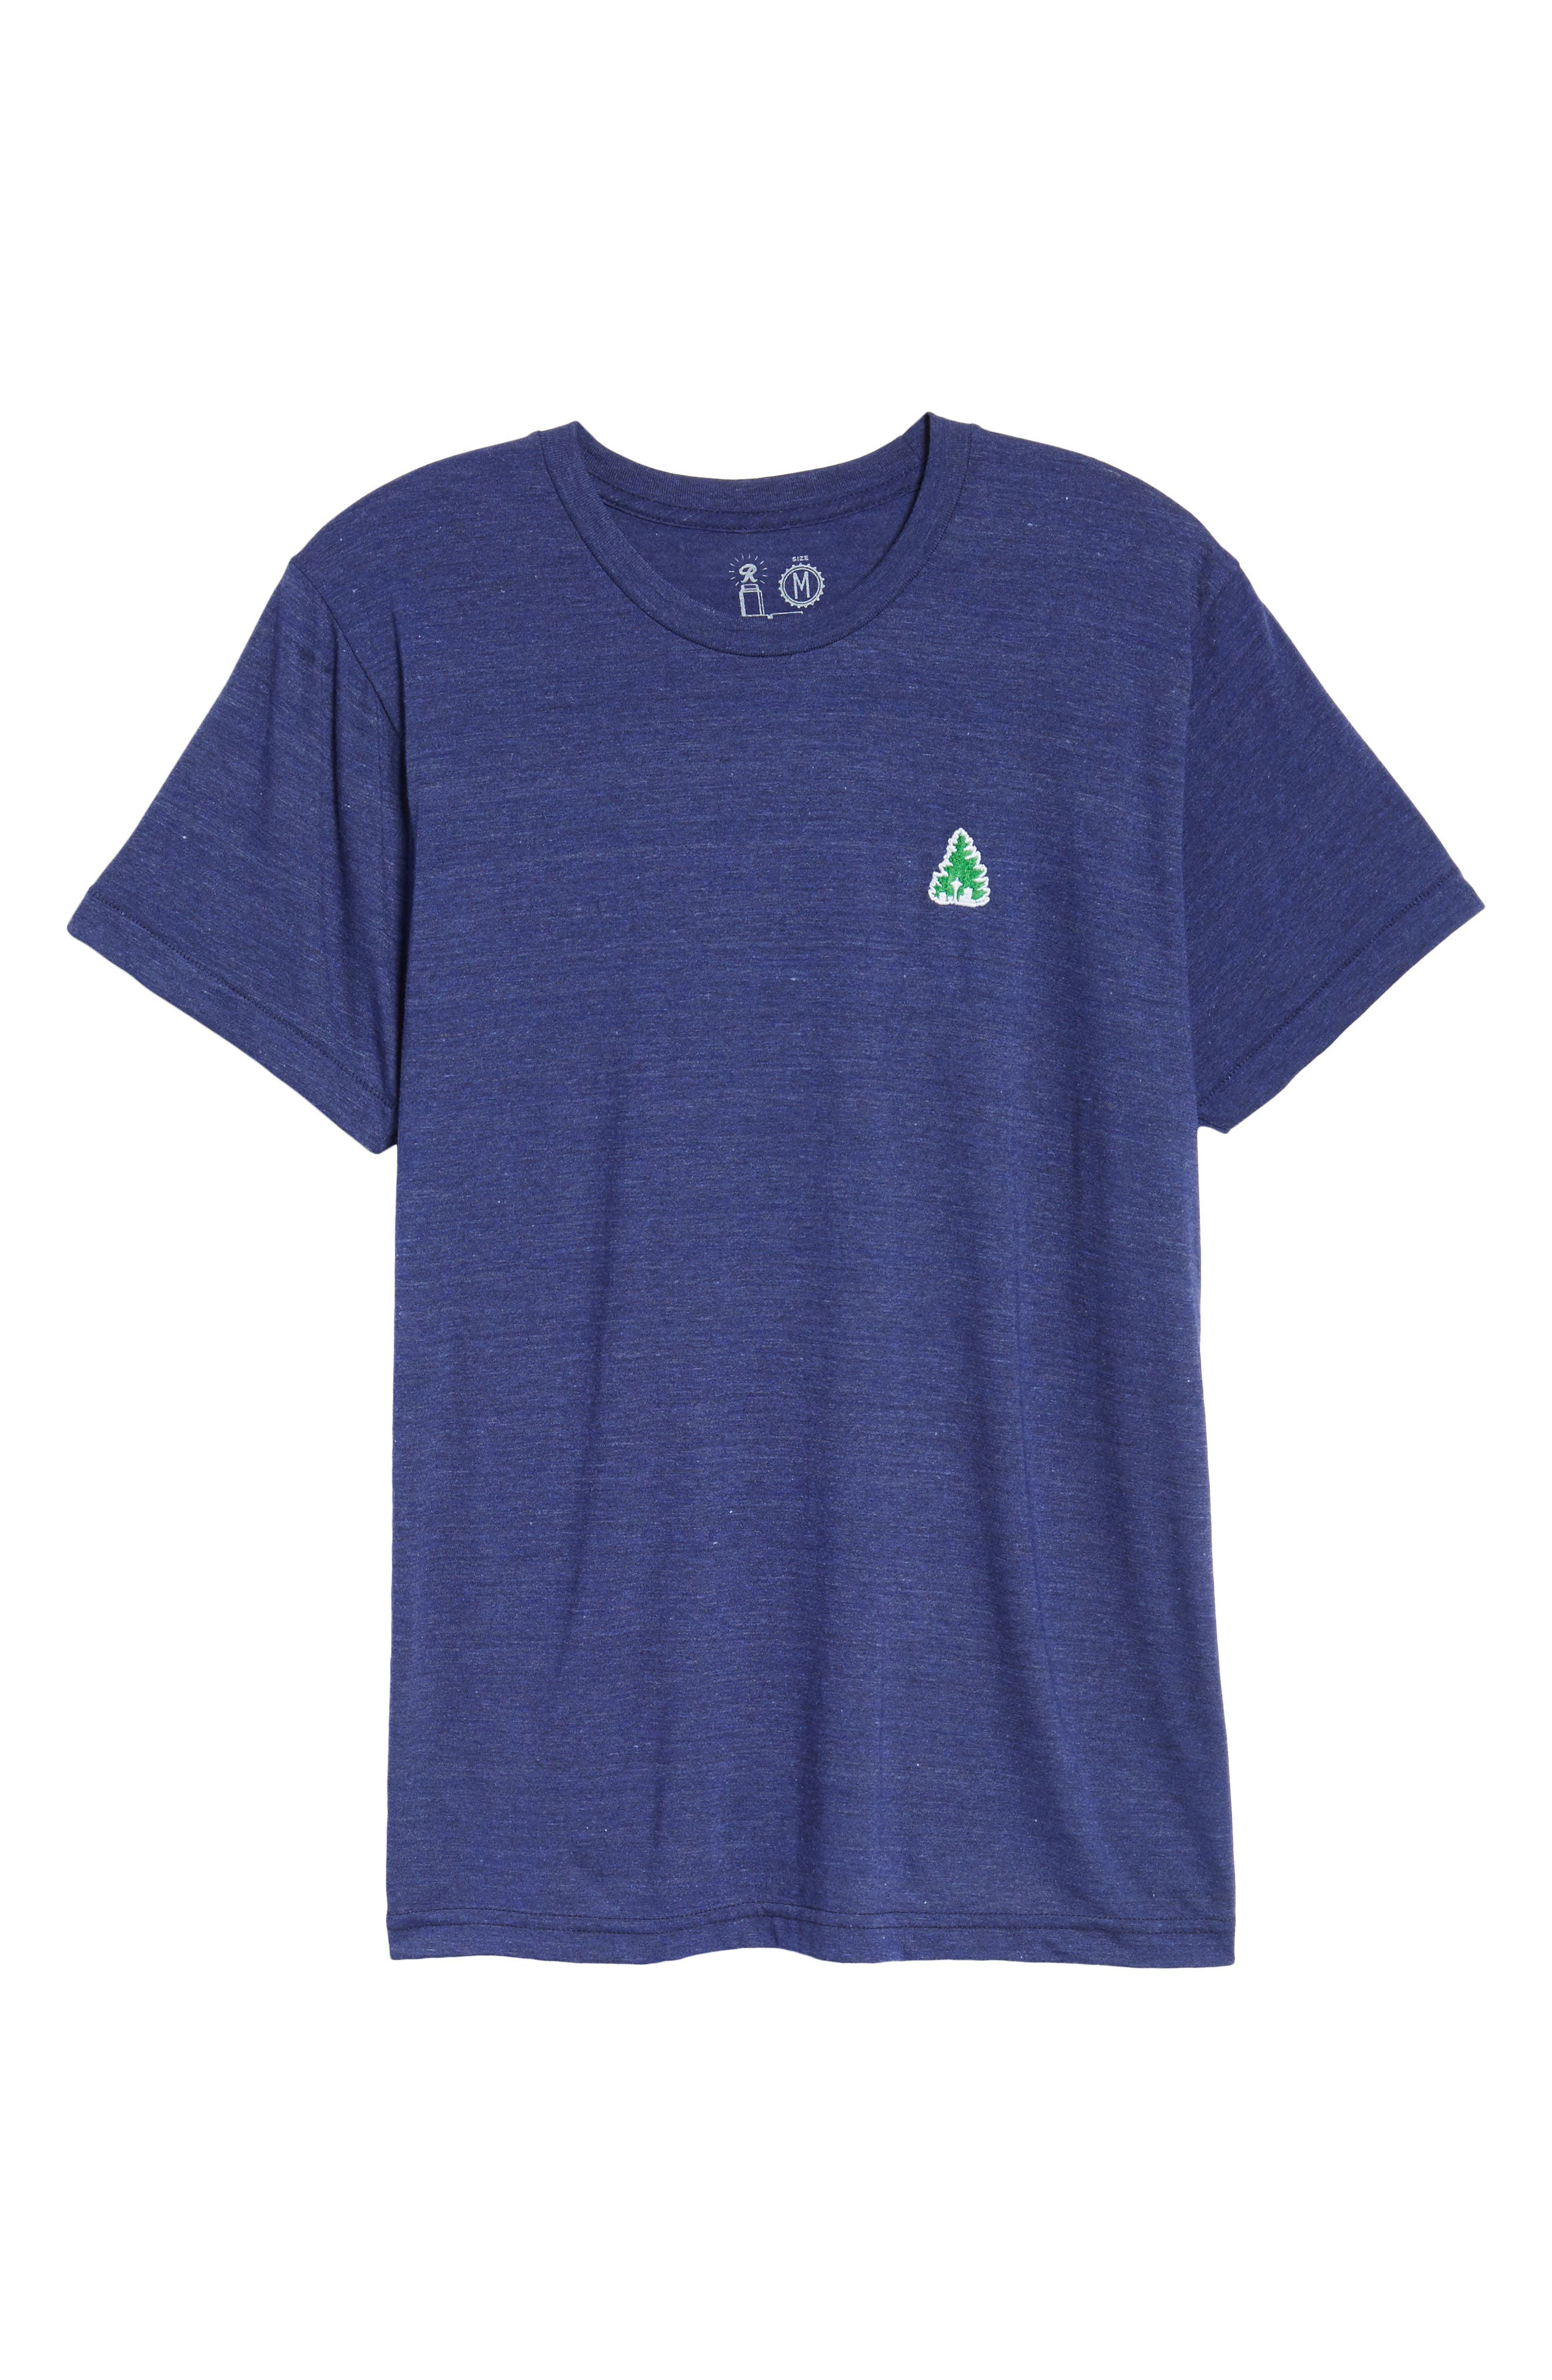 Johnny Tree Embroidered T-Shirt,                             Alternate thumbnail 6, color,                             408